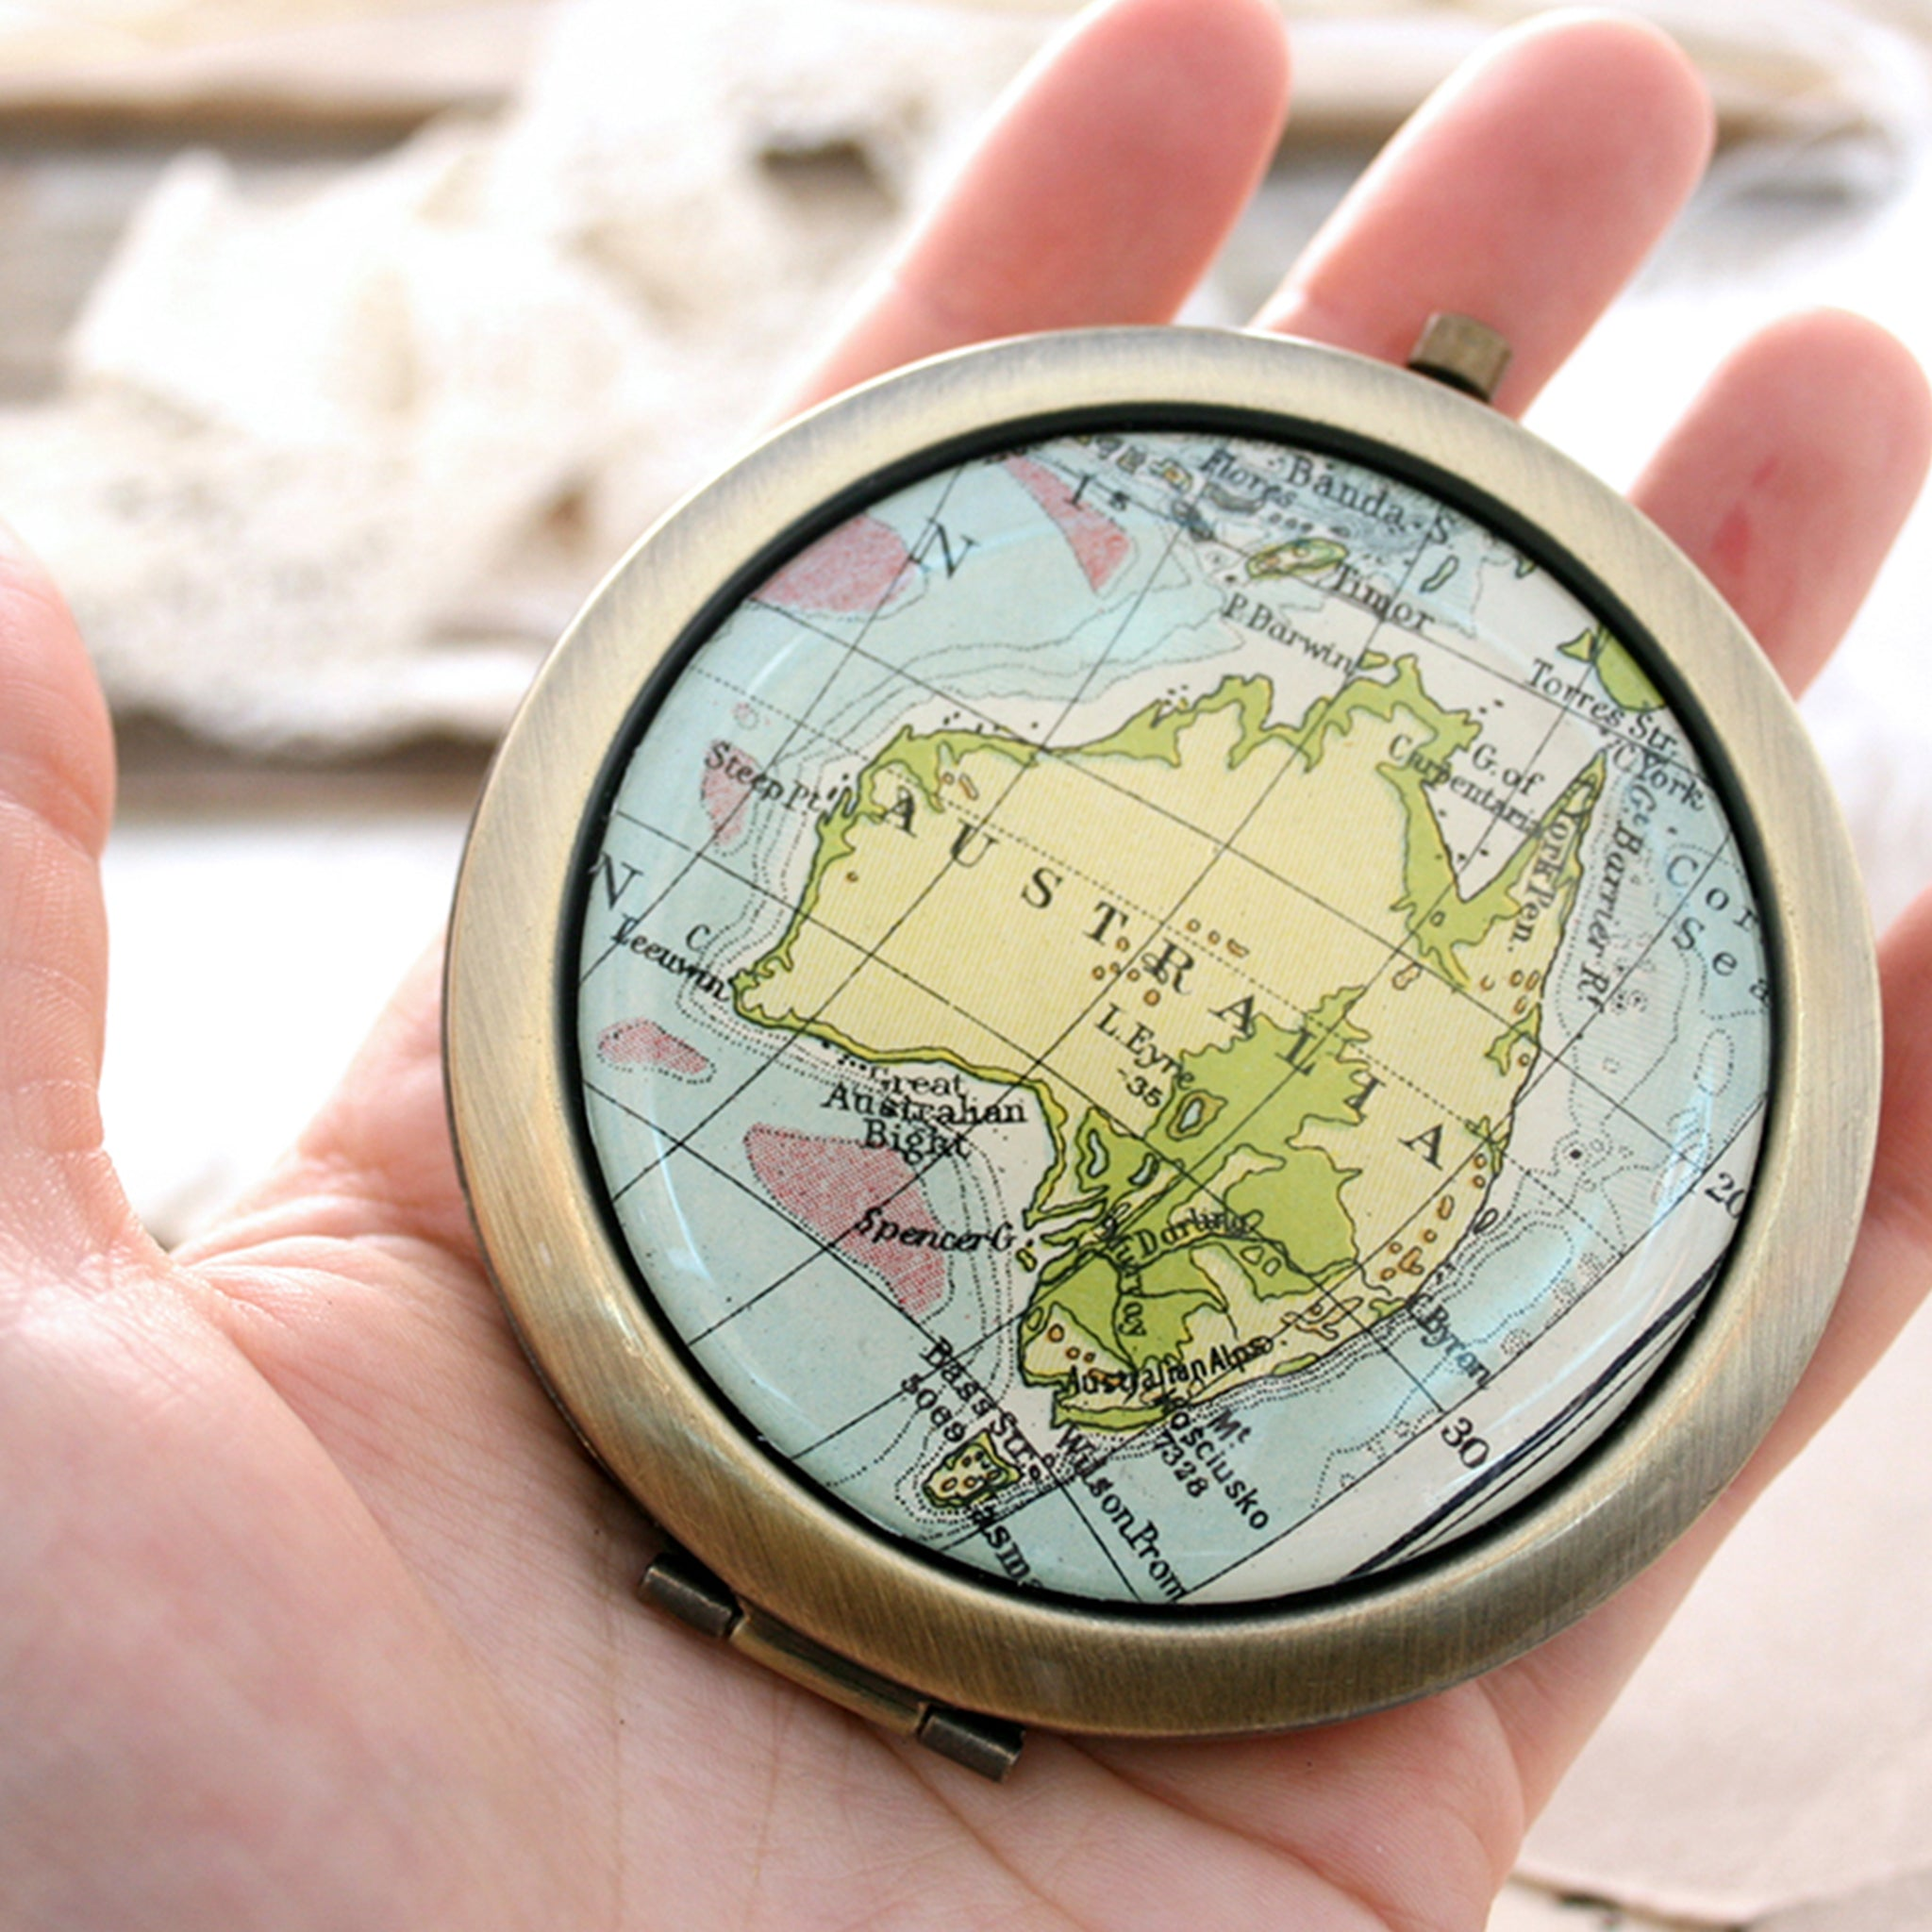 Hold in hand Personalised Compact Mirror in Antique Bronze color featuring map of Australia